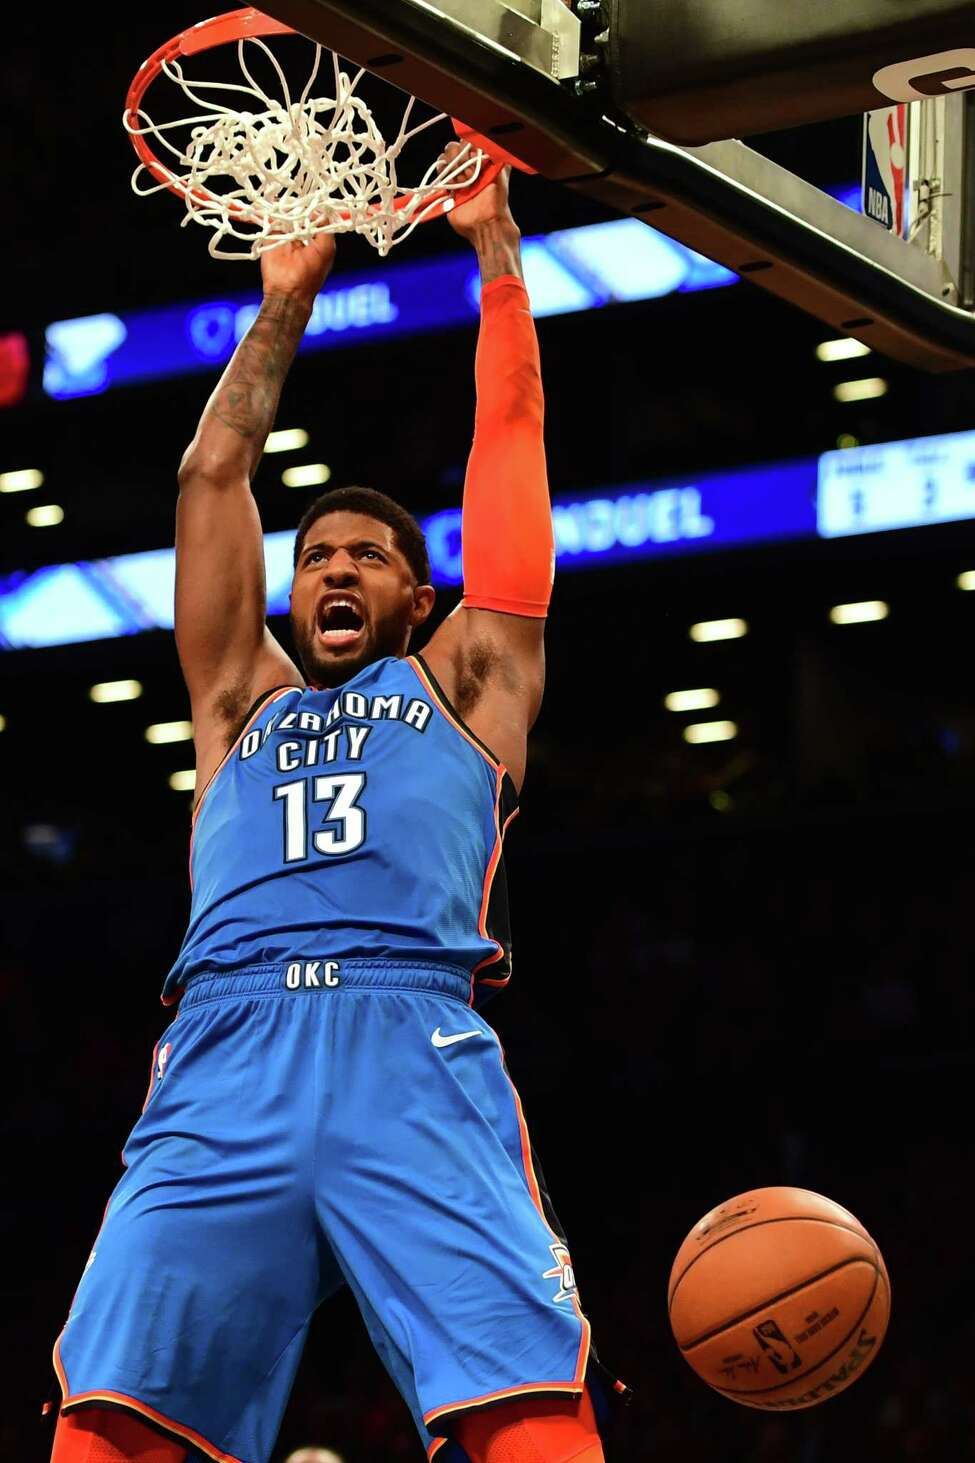 NEW YORK, NEW YORK - DECEMBER 05: Paul George #13 of the Oklahoma City Thunder reacts after making a slam dunk during the fourth quarter of the game against Brooklyn Nets at Barclays Center on December 05, 2018 in New York City. NOTE TO USER: User expressly acknowledges and agrees that, by downloading and or using this photograph, User is consenting to the terms and conditions of the Getty Images License Agreement. (Photo by Sarah Stier/Getty Images)